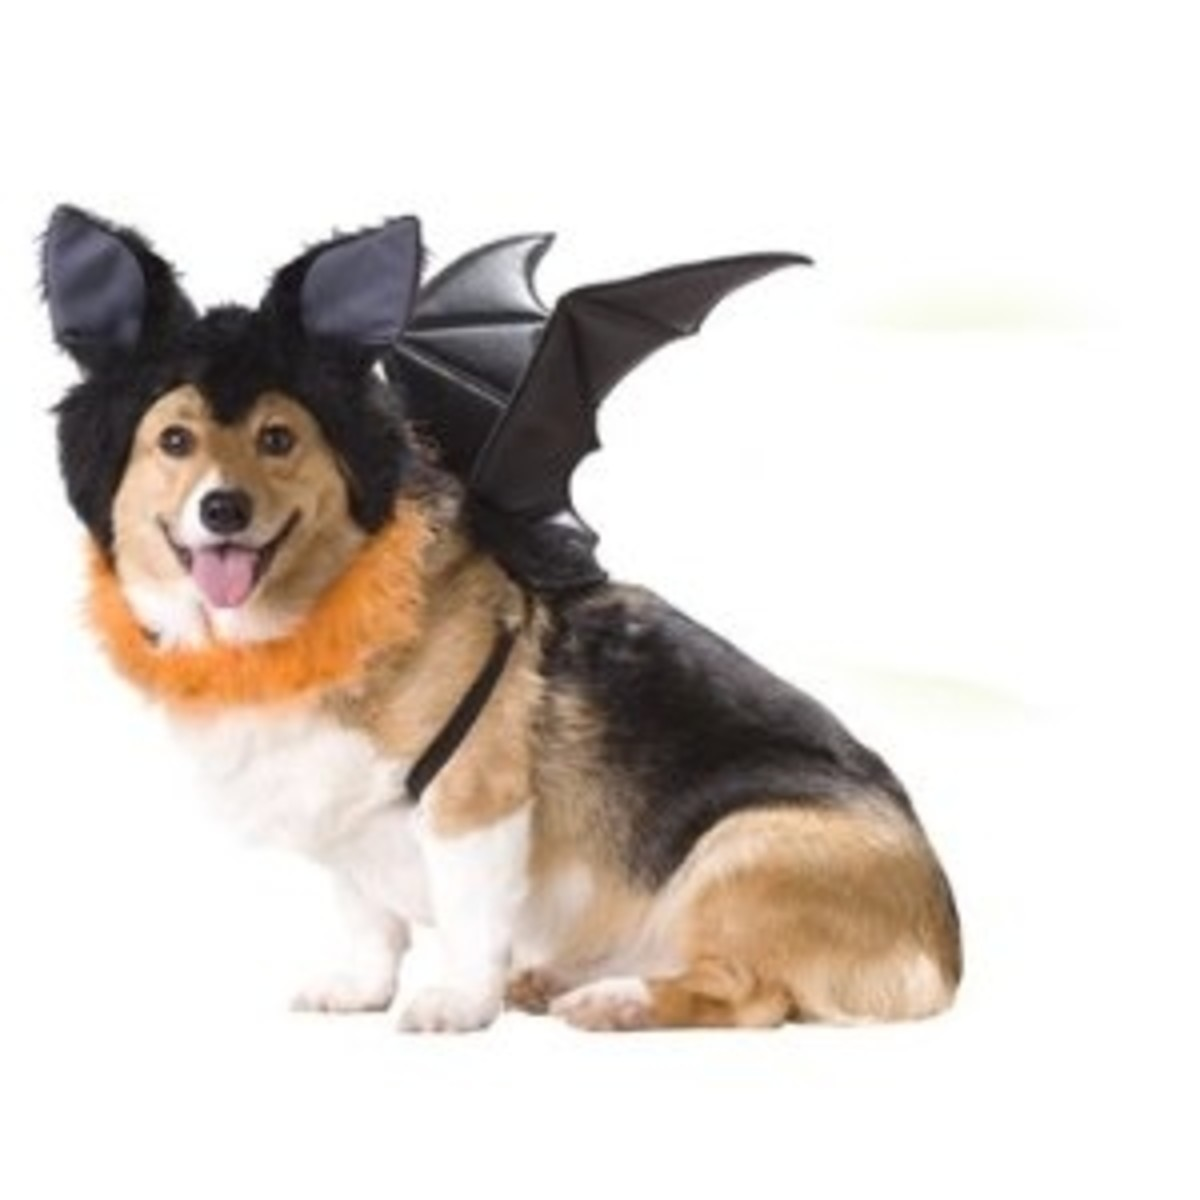 Animal Planet Spooky Bat Dog Halloween Costume with Wings & Furry Ears Headpiece Small